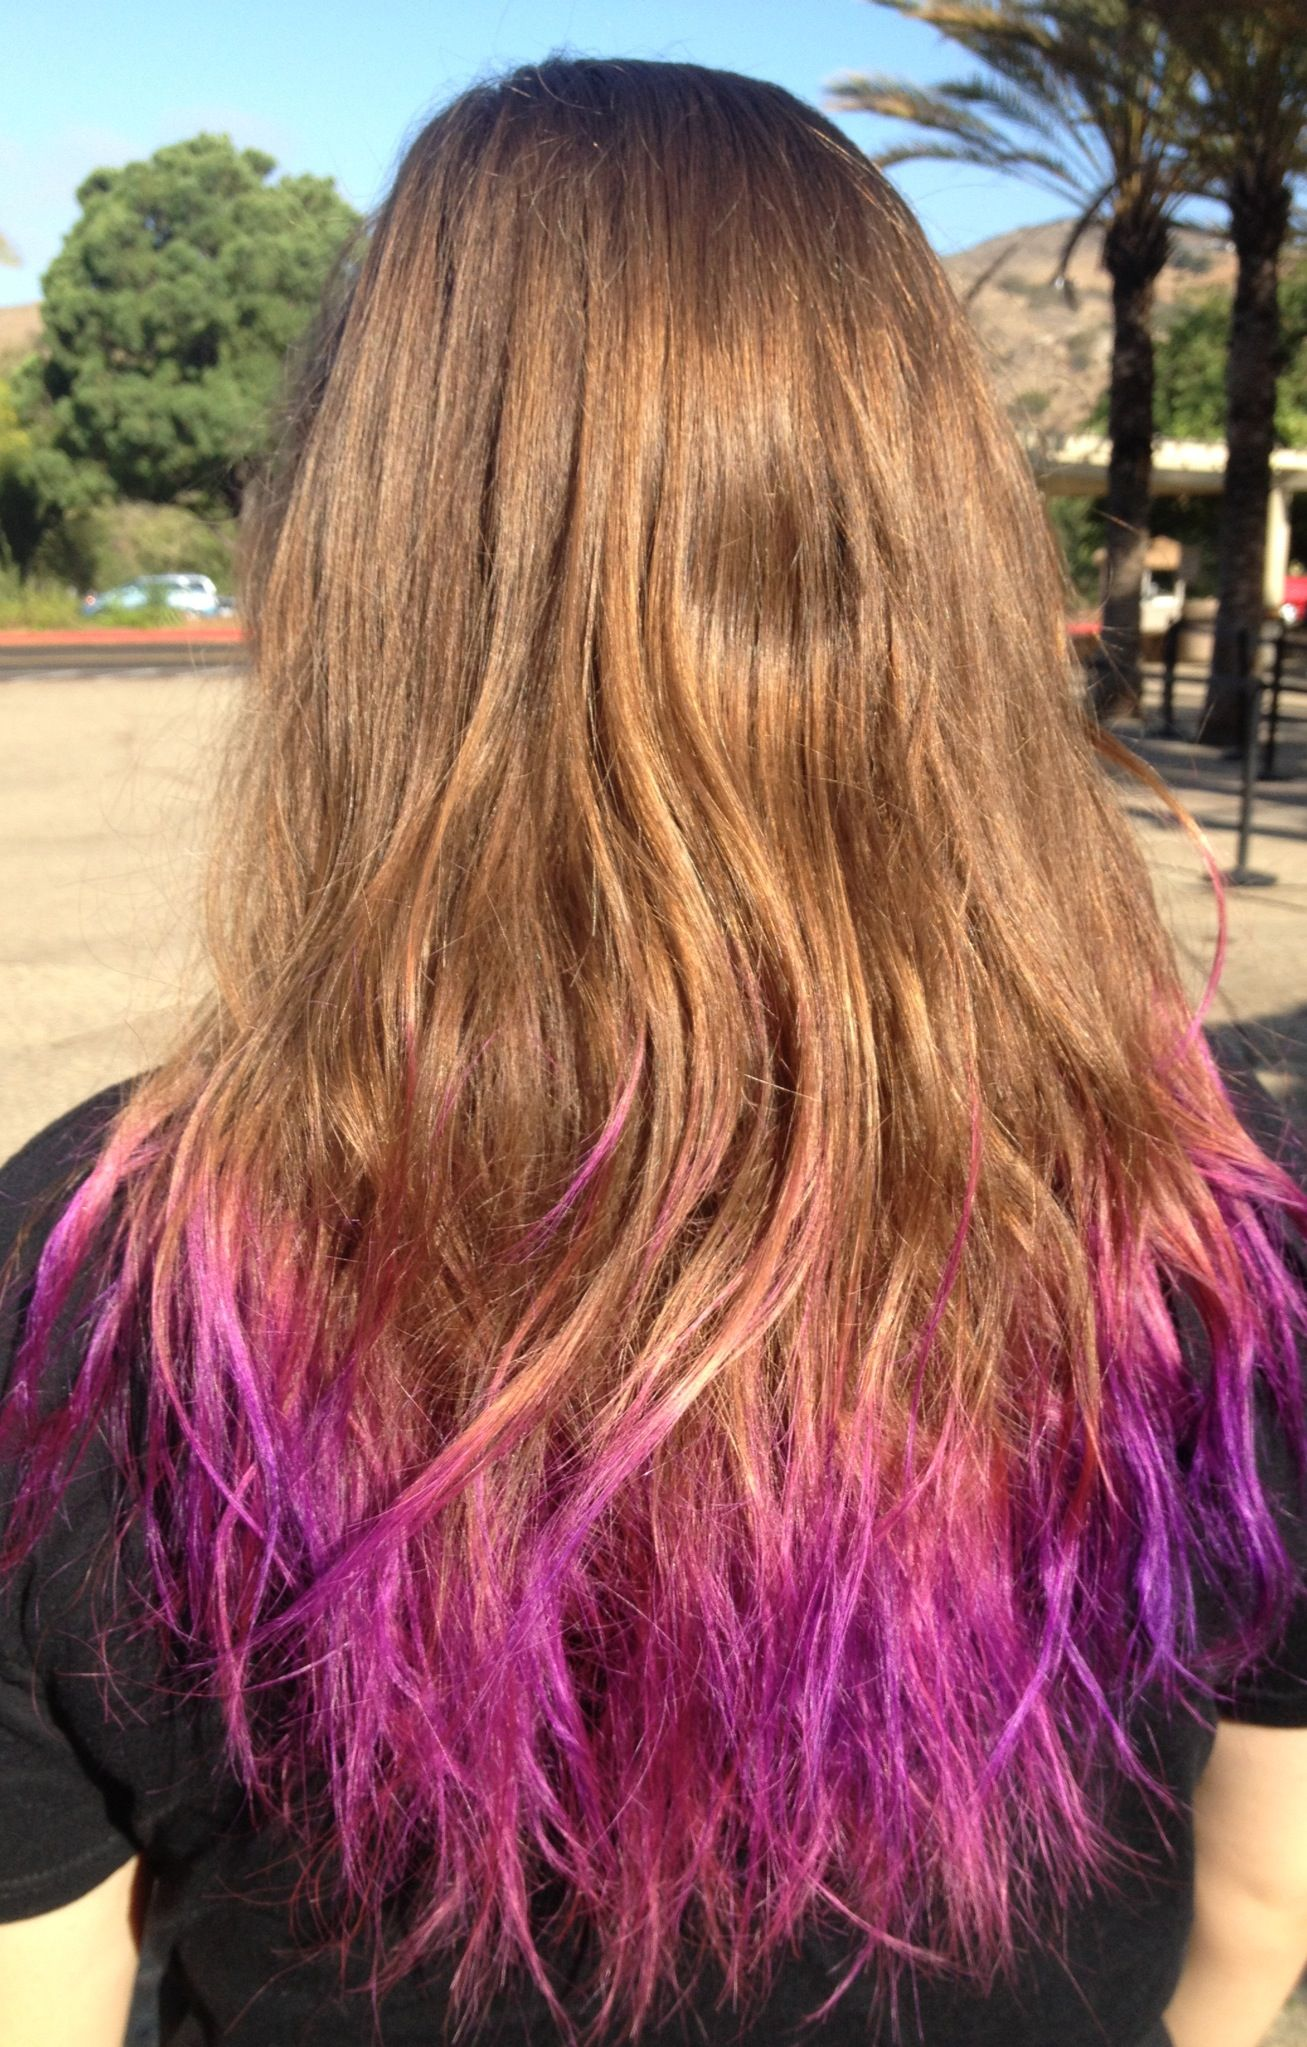 Pink and purple tips hair